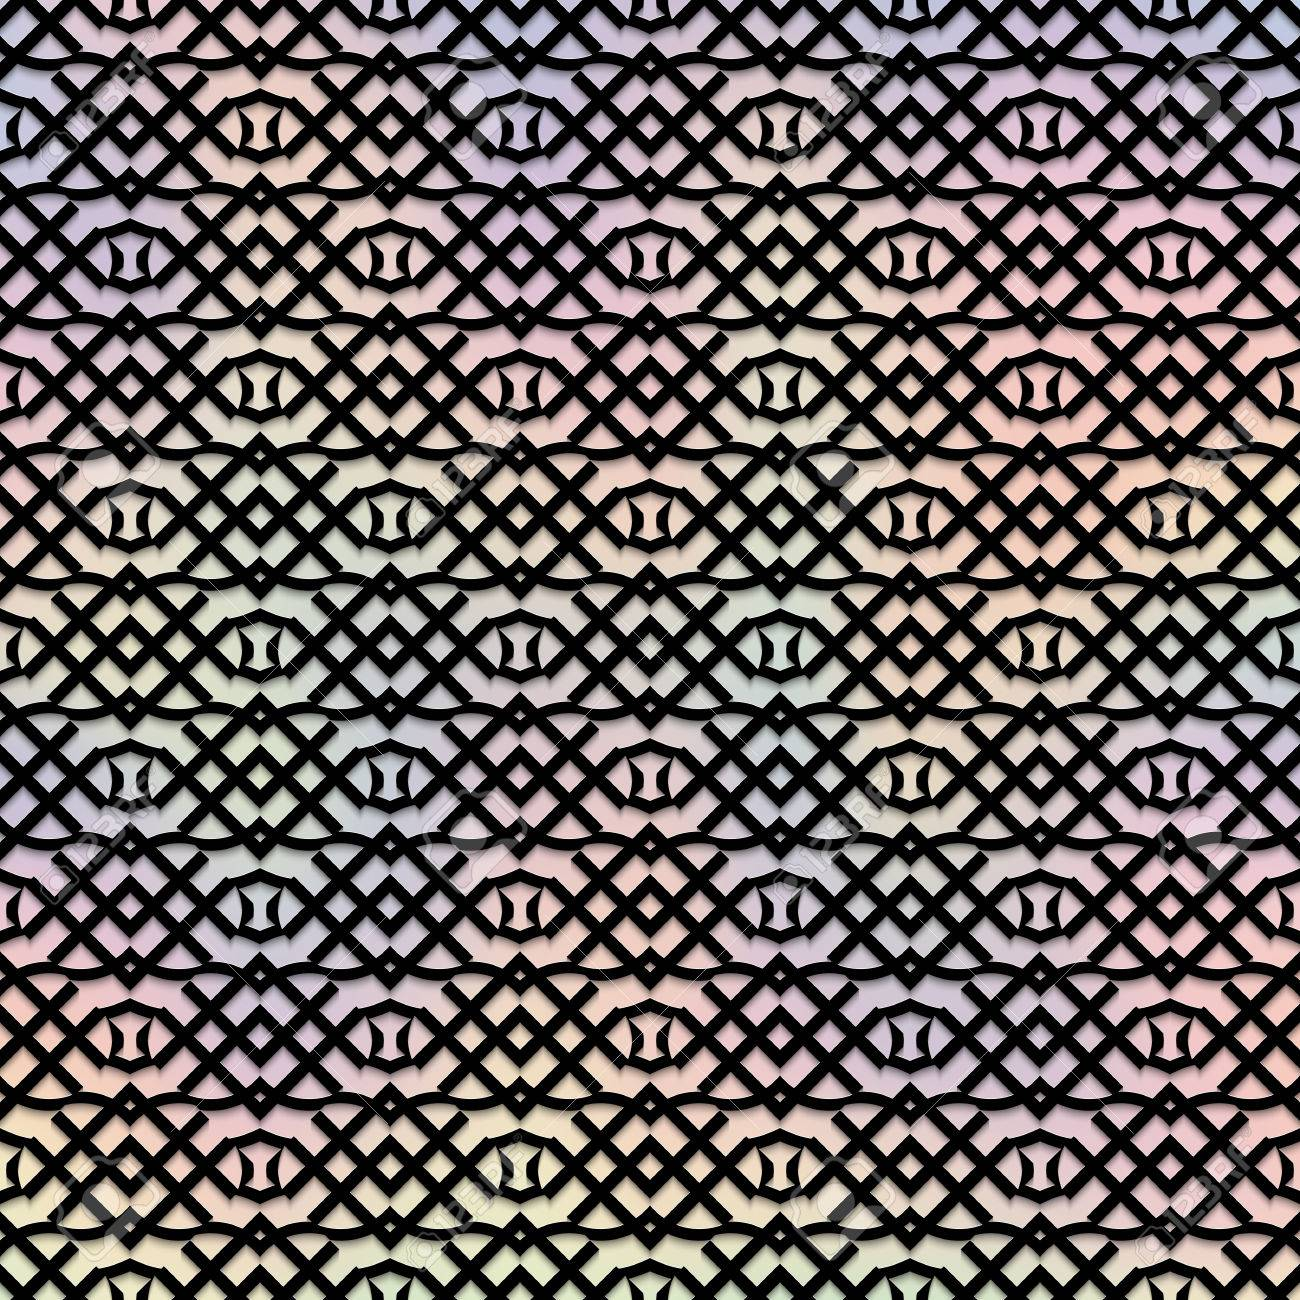 Retro Backdrop Multi Color Design Vintage Graphic Abstract Pattern